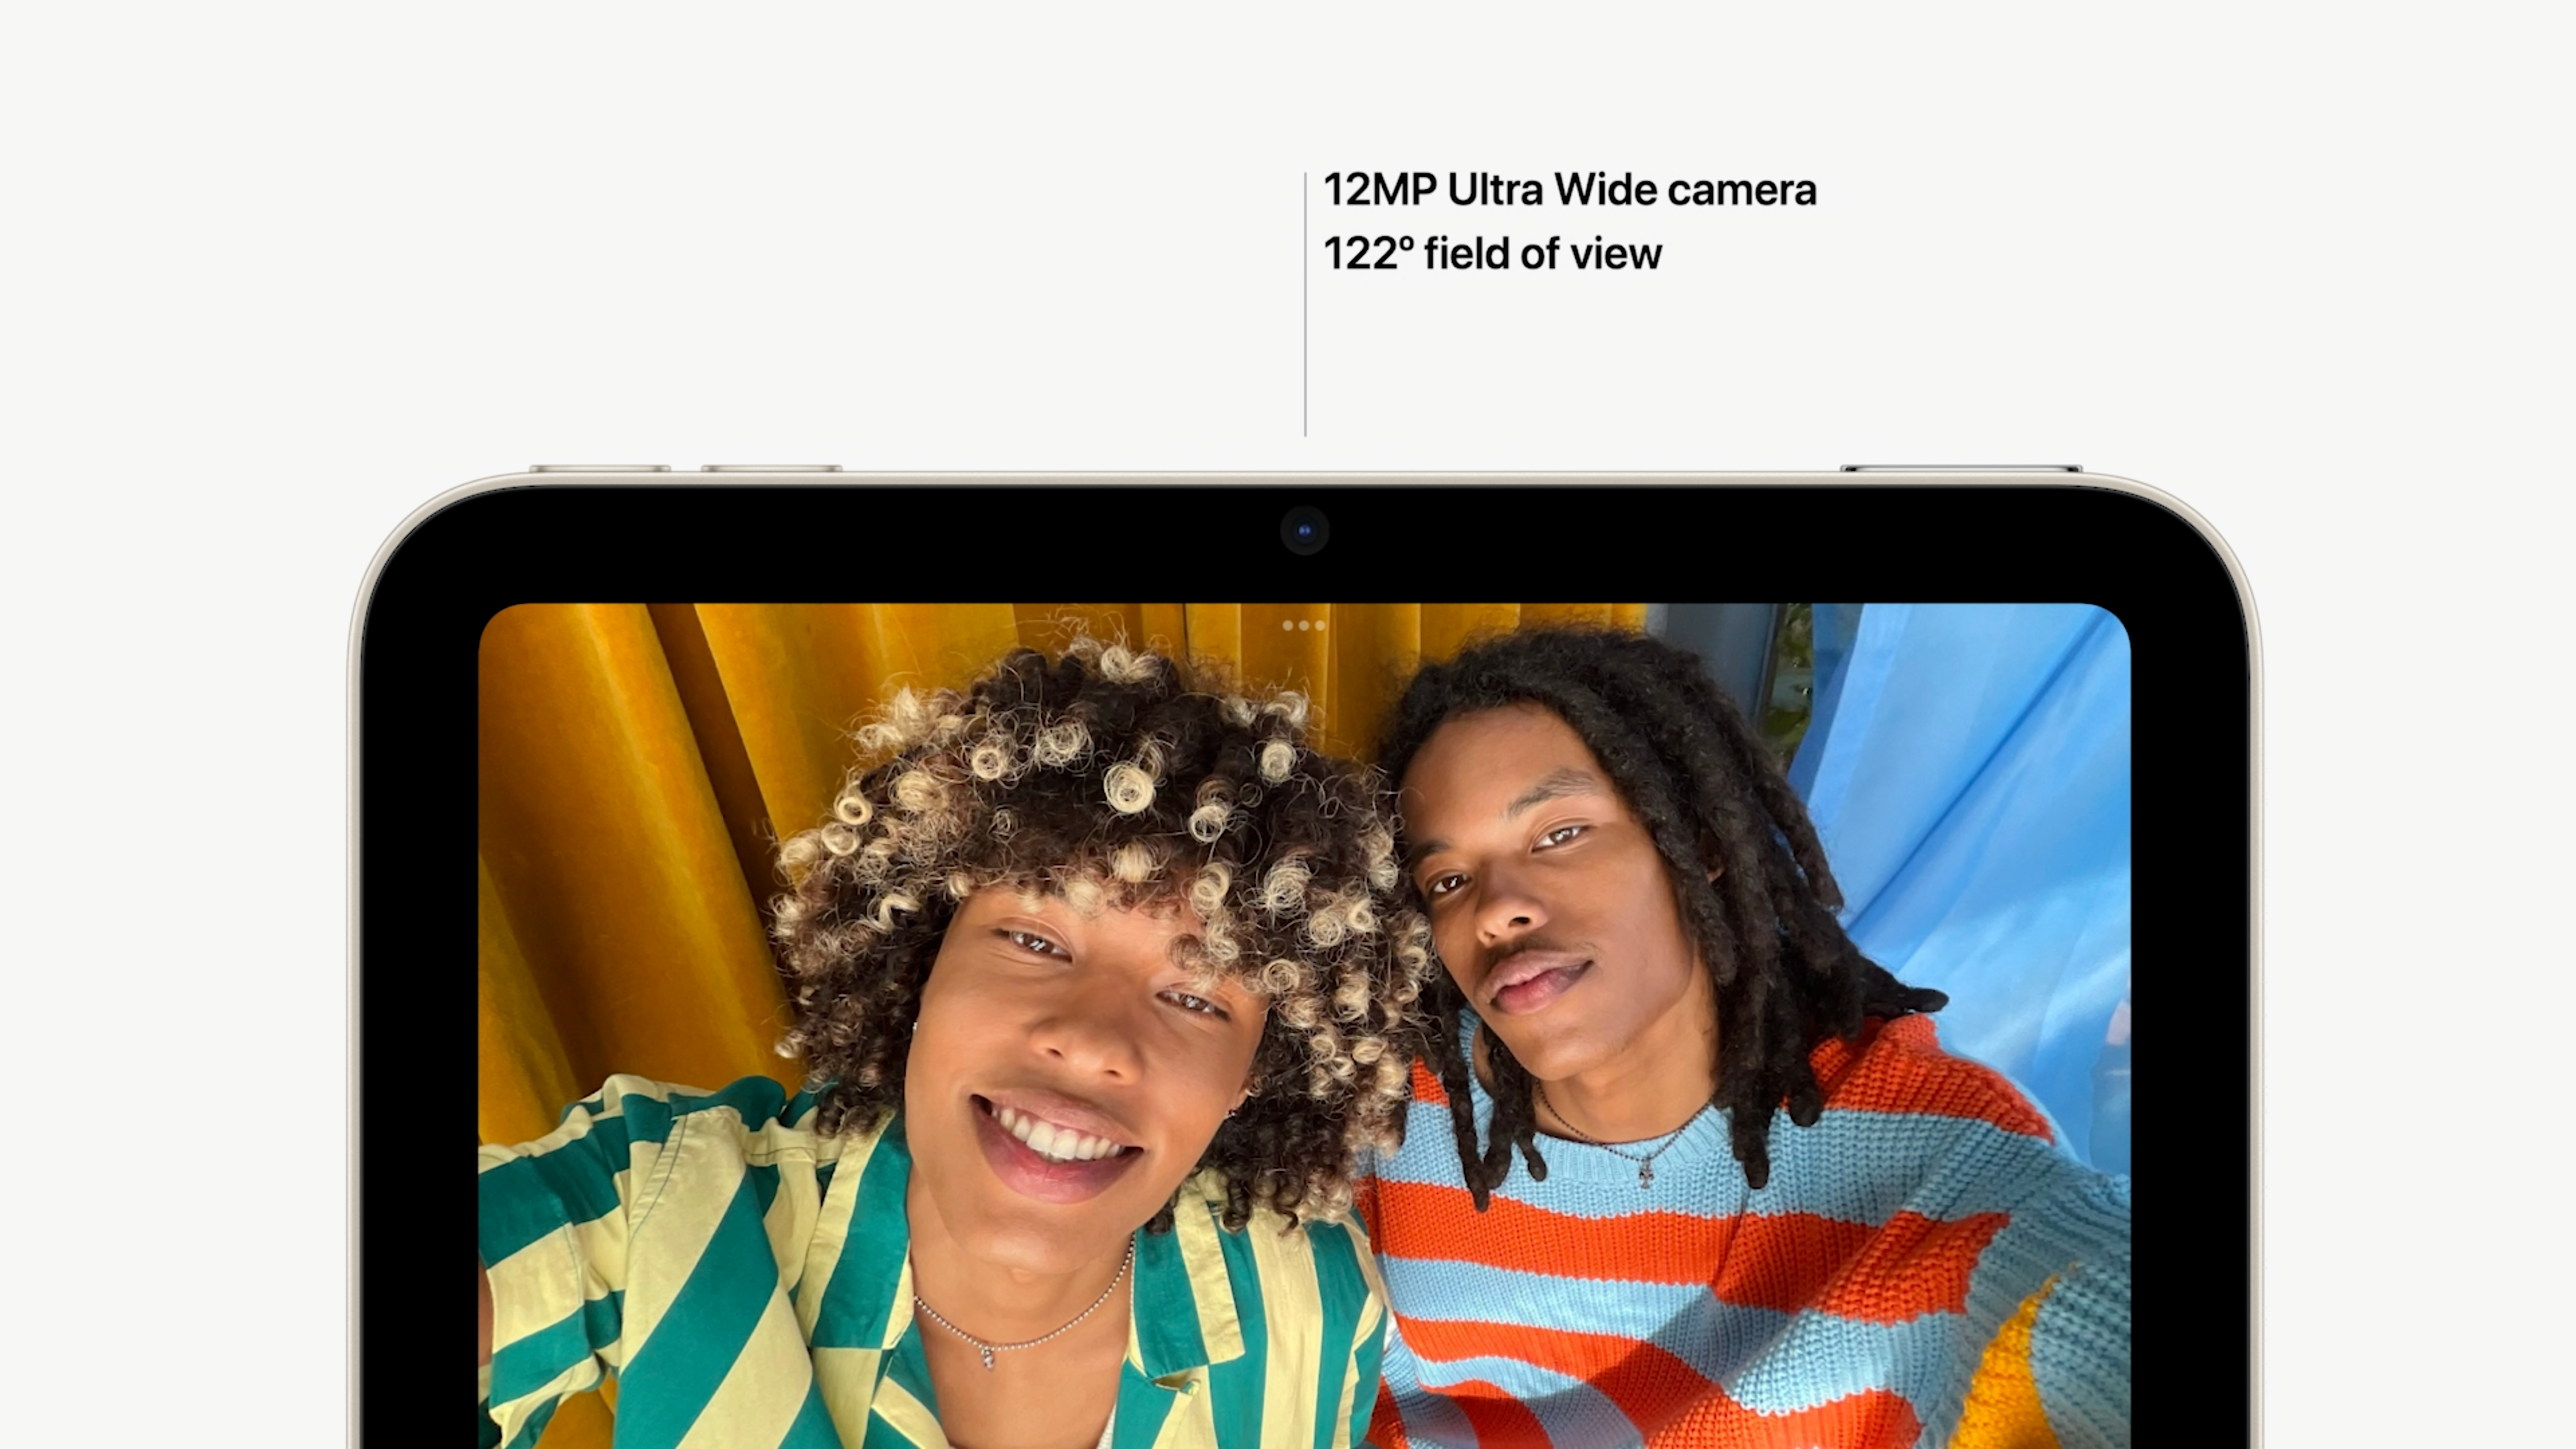 Center Stage: Why Apple's zooming-video feature is so useful - CNET